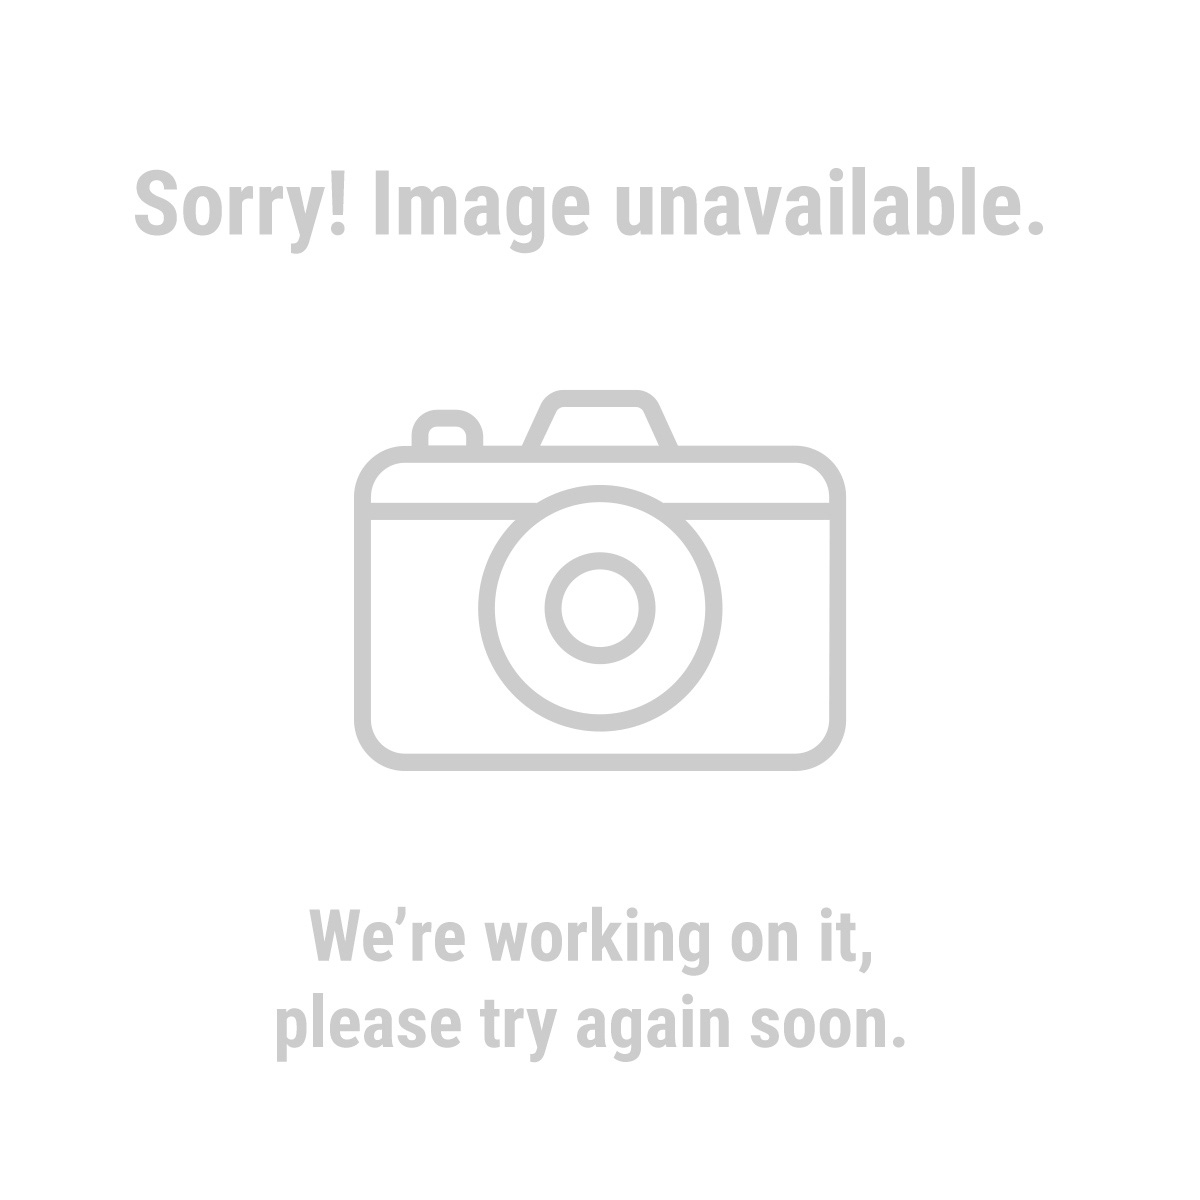 Admiral® 62731 5-1/2 in. 30T Circular Saw Blade